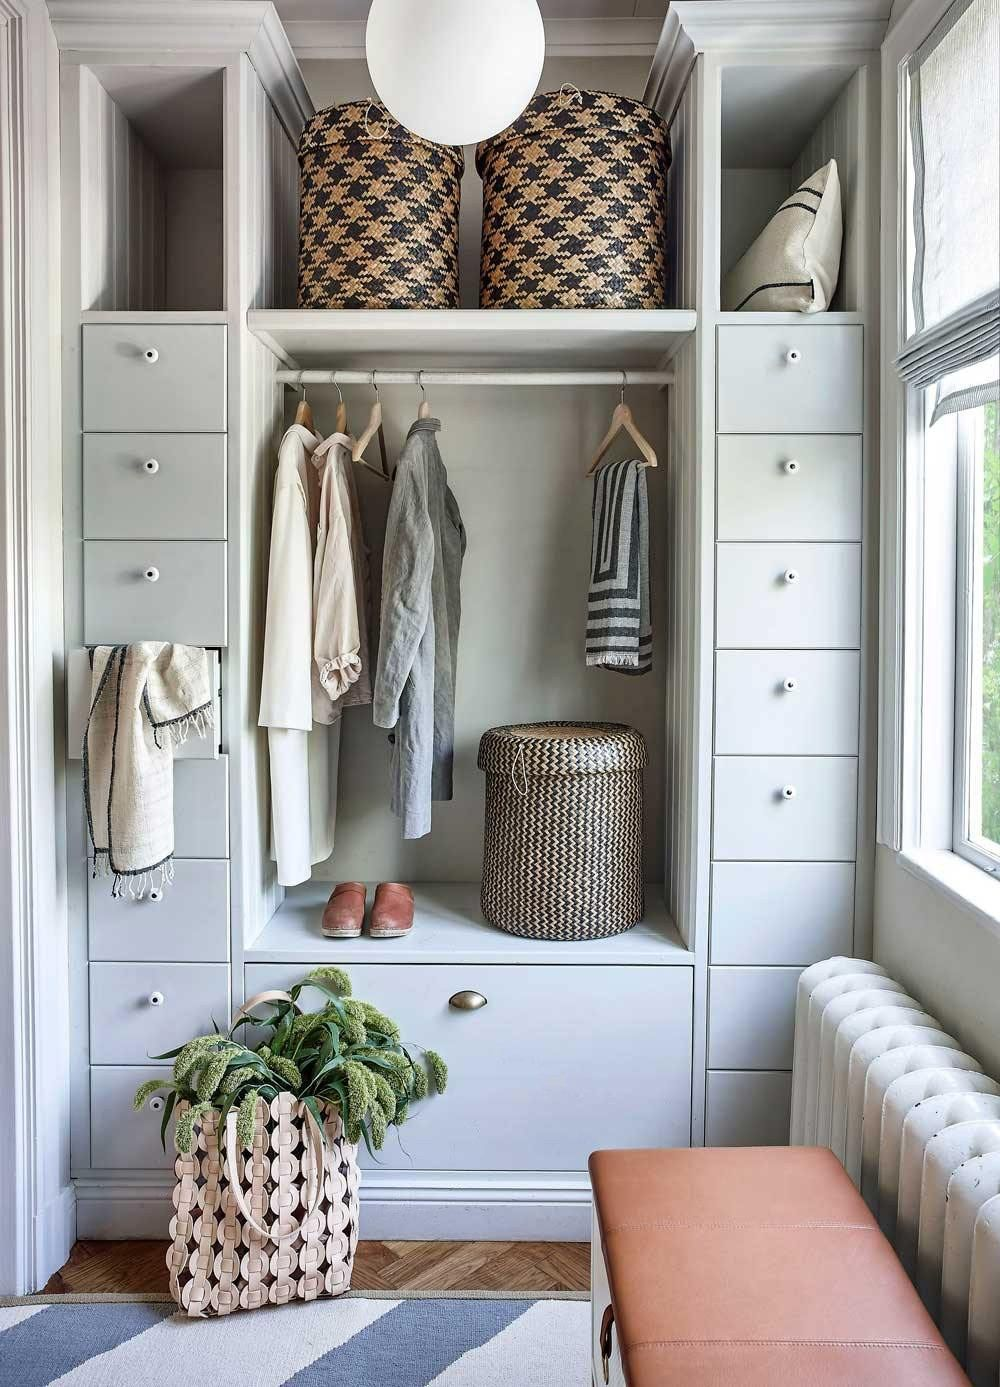 10 Pins : Pinterest Inspiration - Room for Tuesday Blog ...